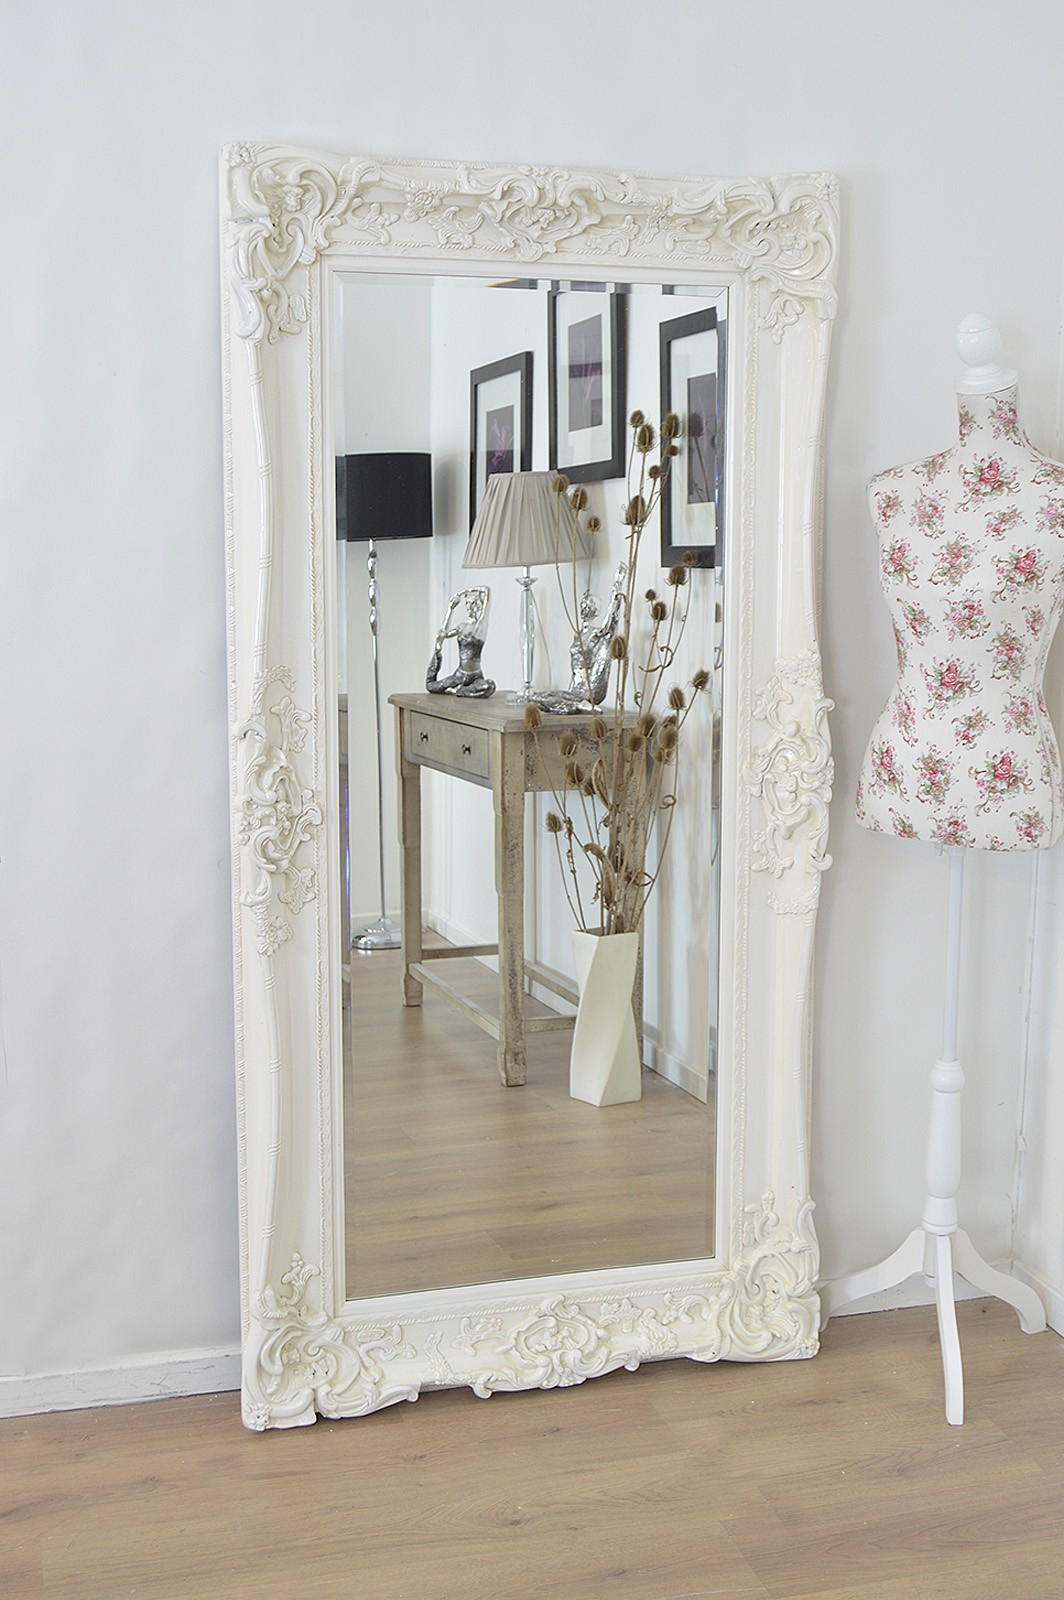 Large Ivory Antique Shab Chic Ornate Wall Mirror 6ft X 3ft Pertaining To Shabby Chic Wall Mirrors (Image 5 of 15)